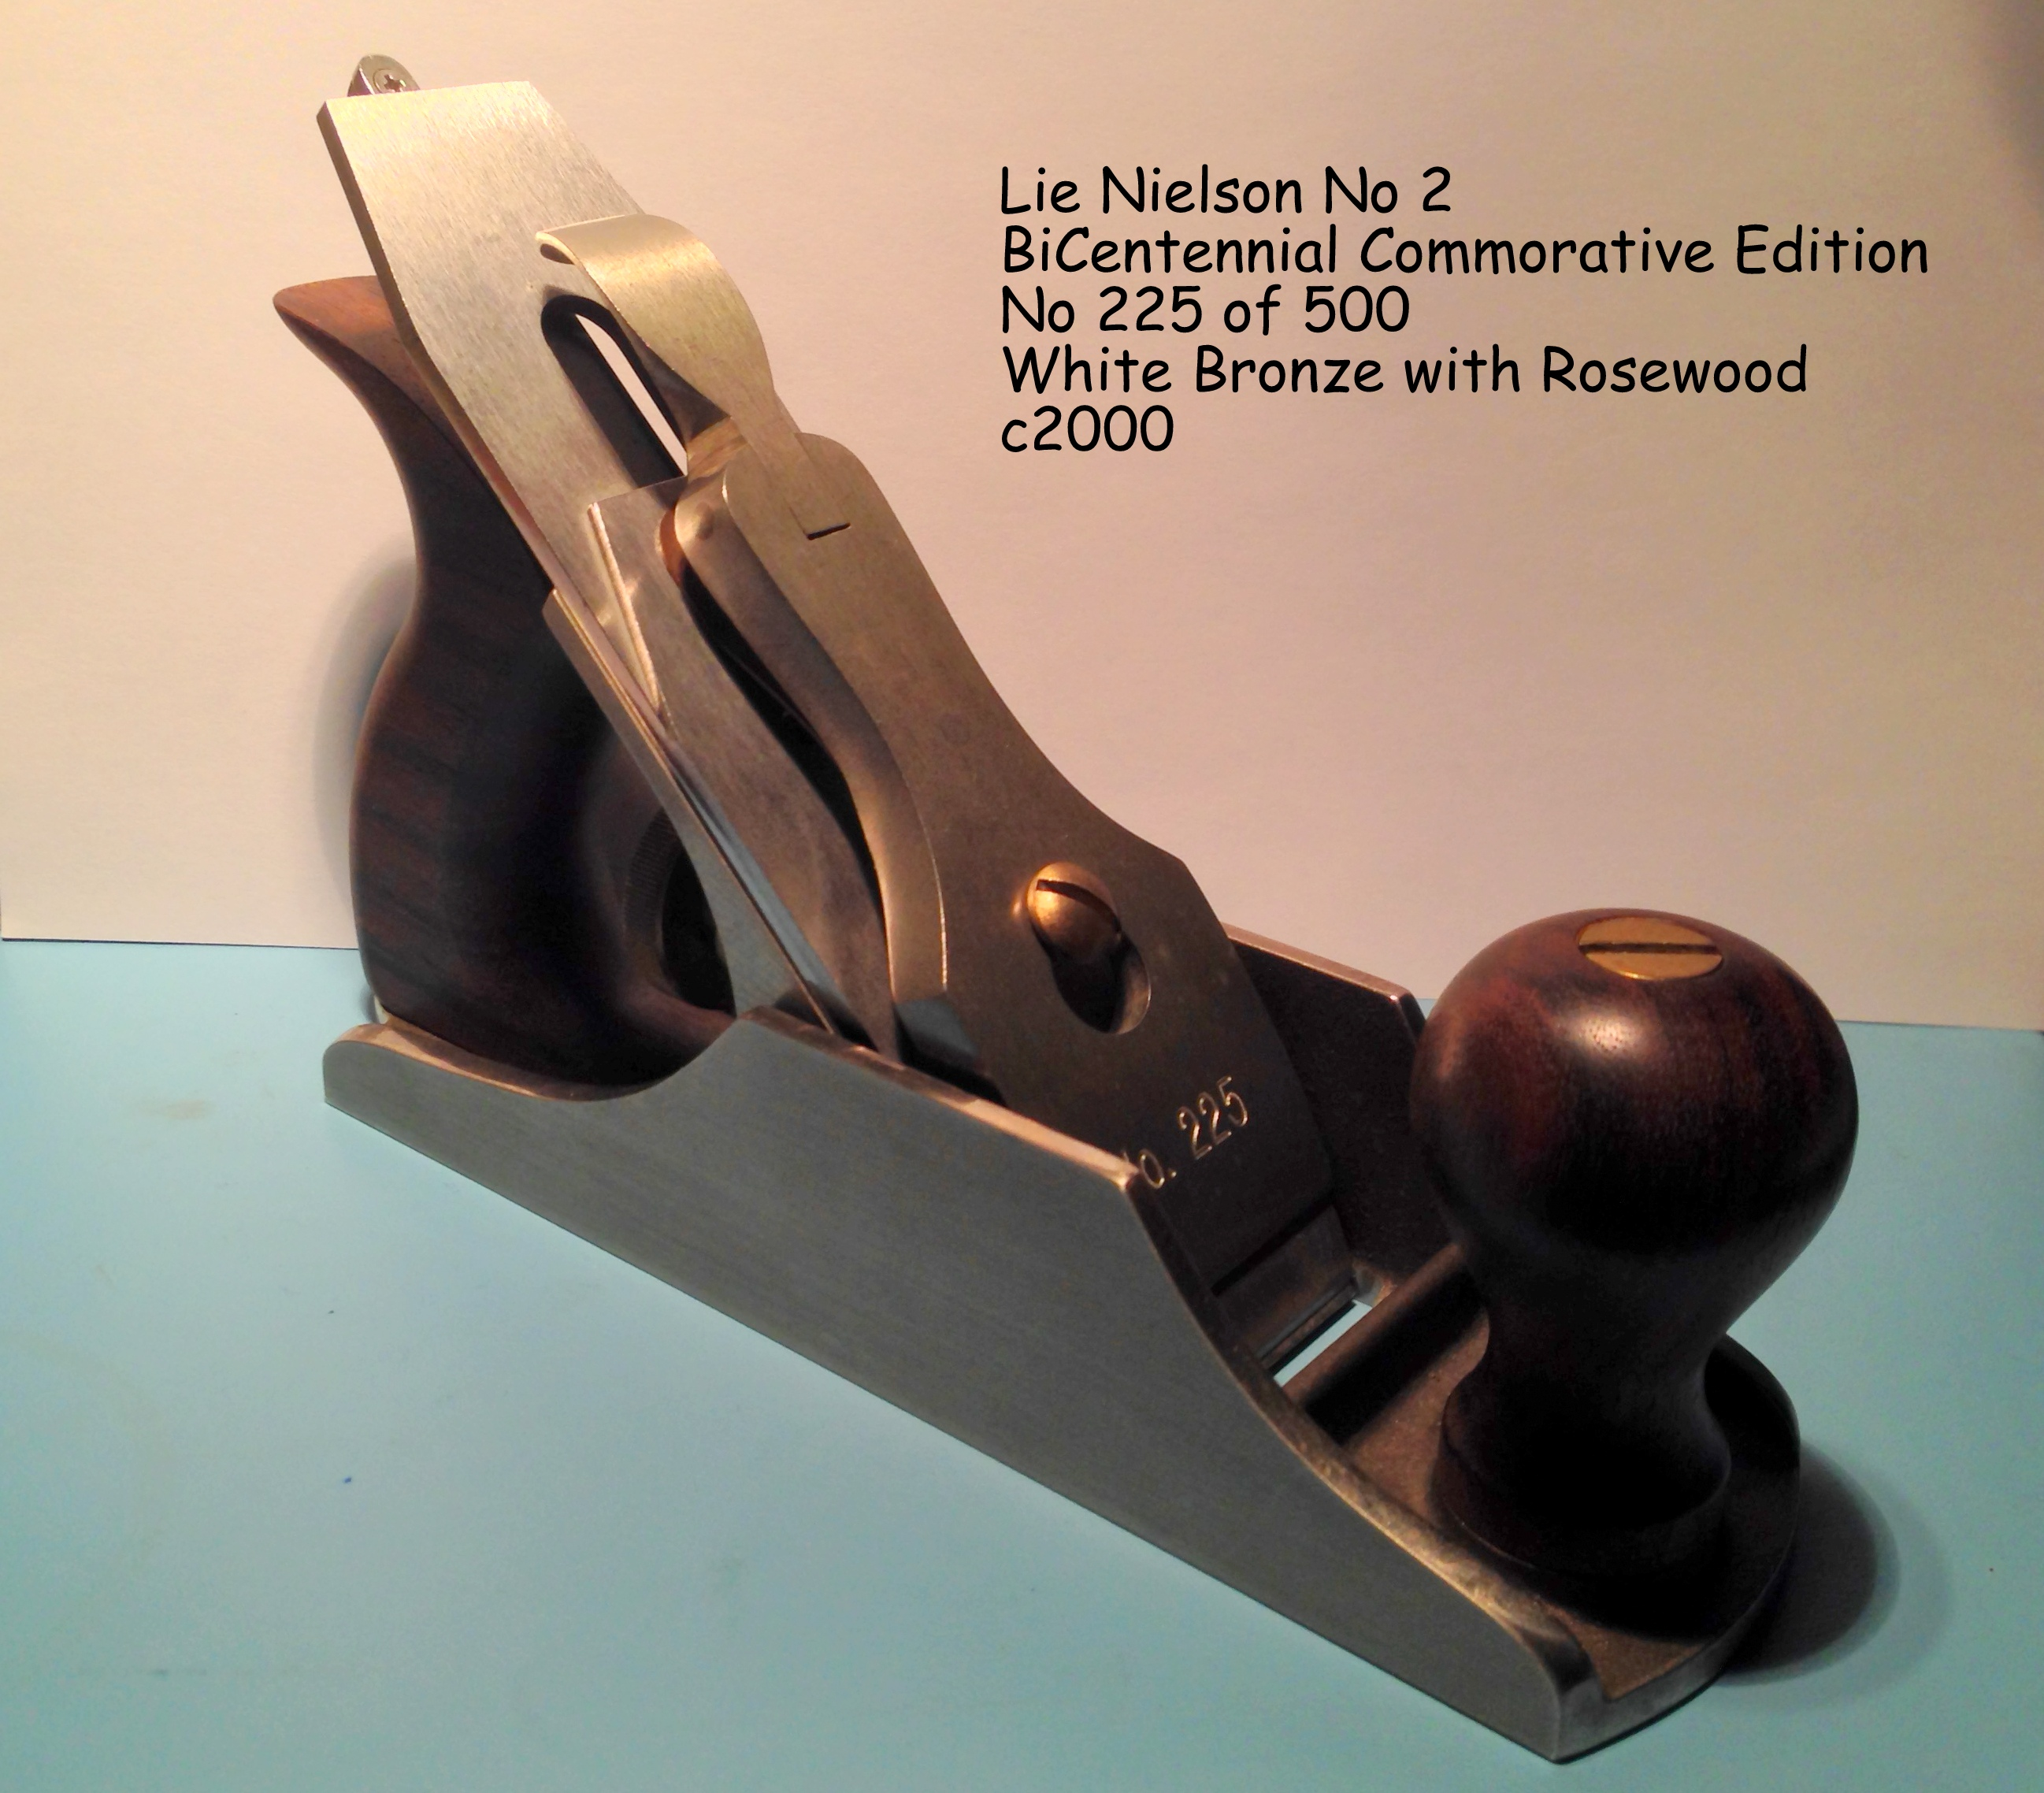 Lie Nielson No 2 Limited Edition